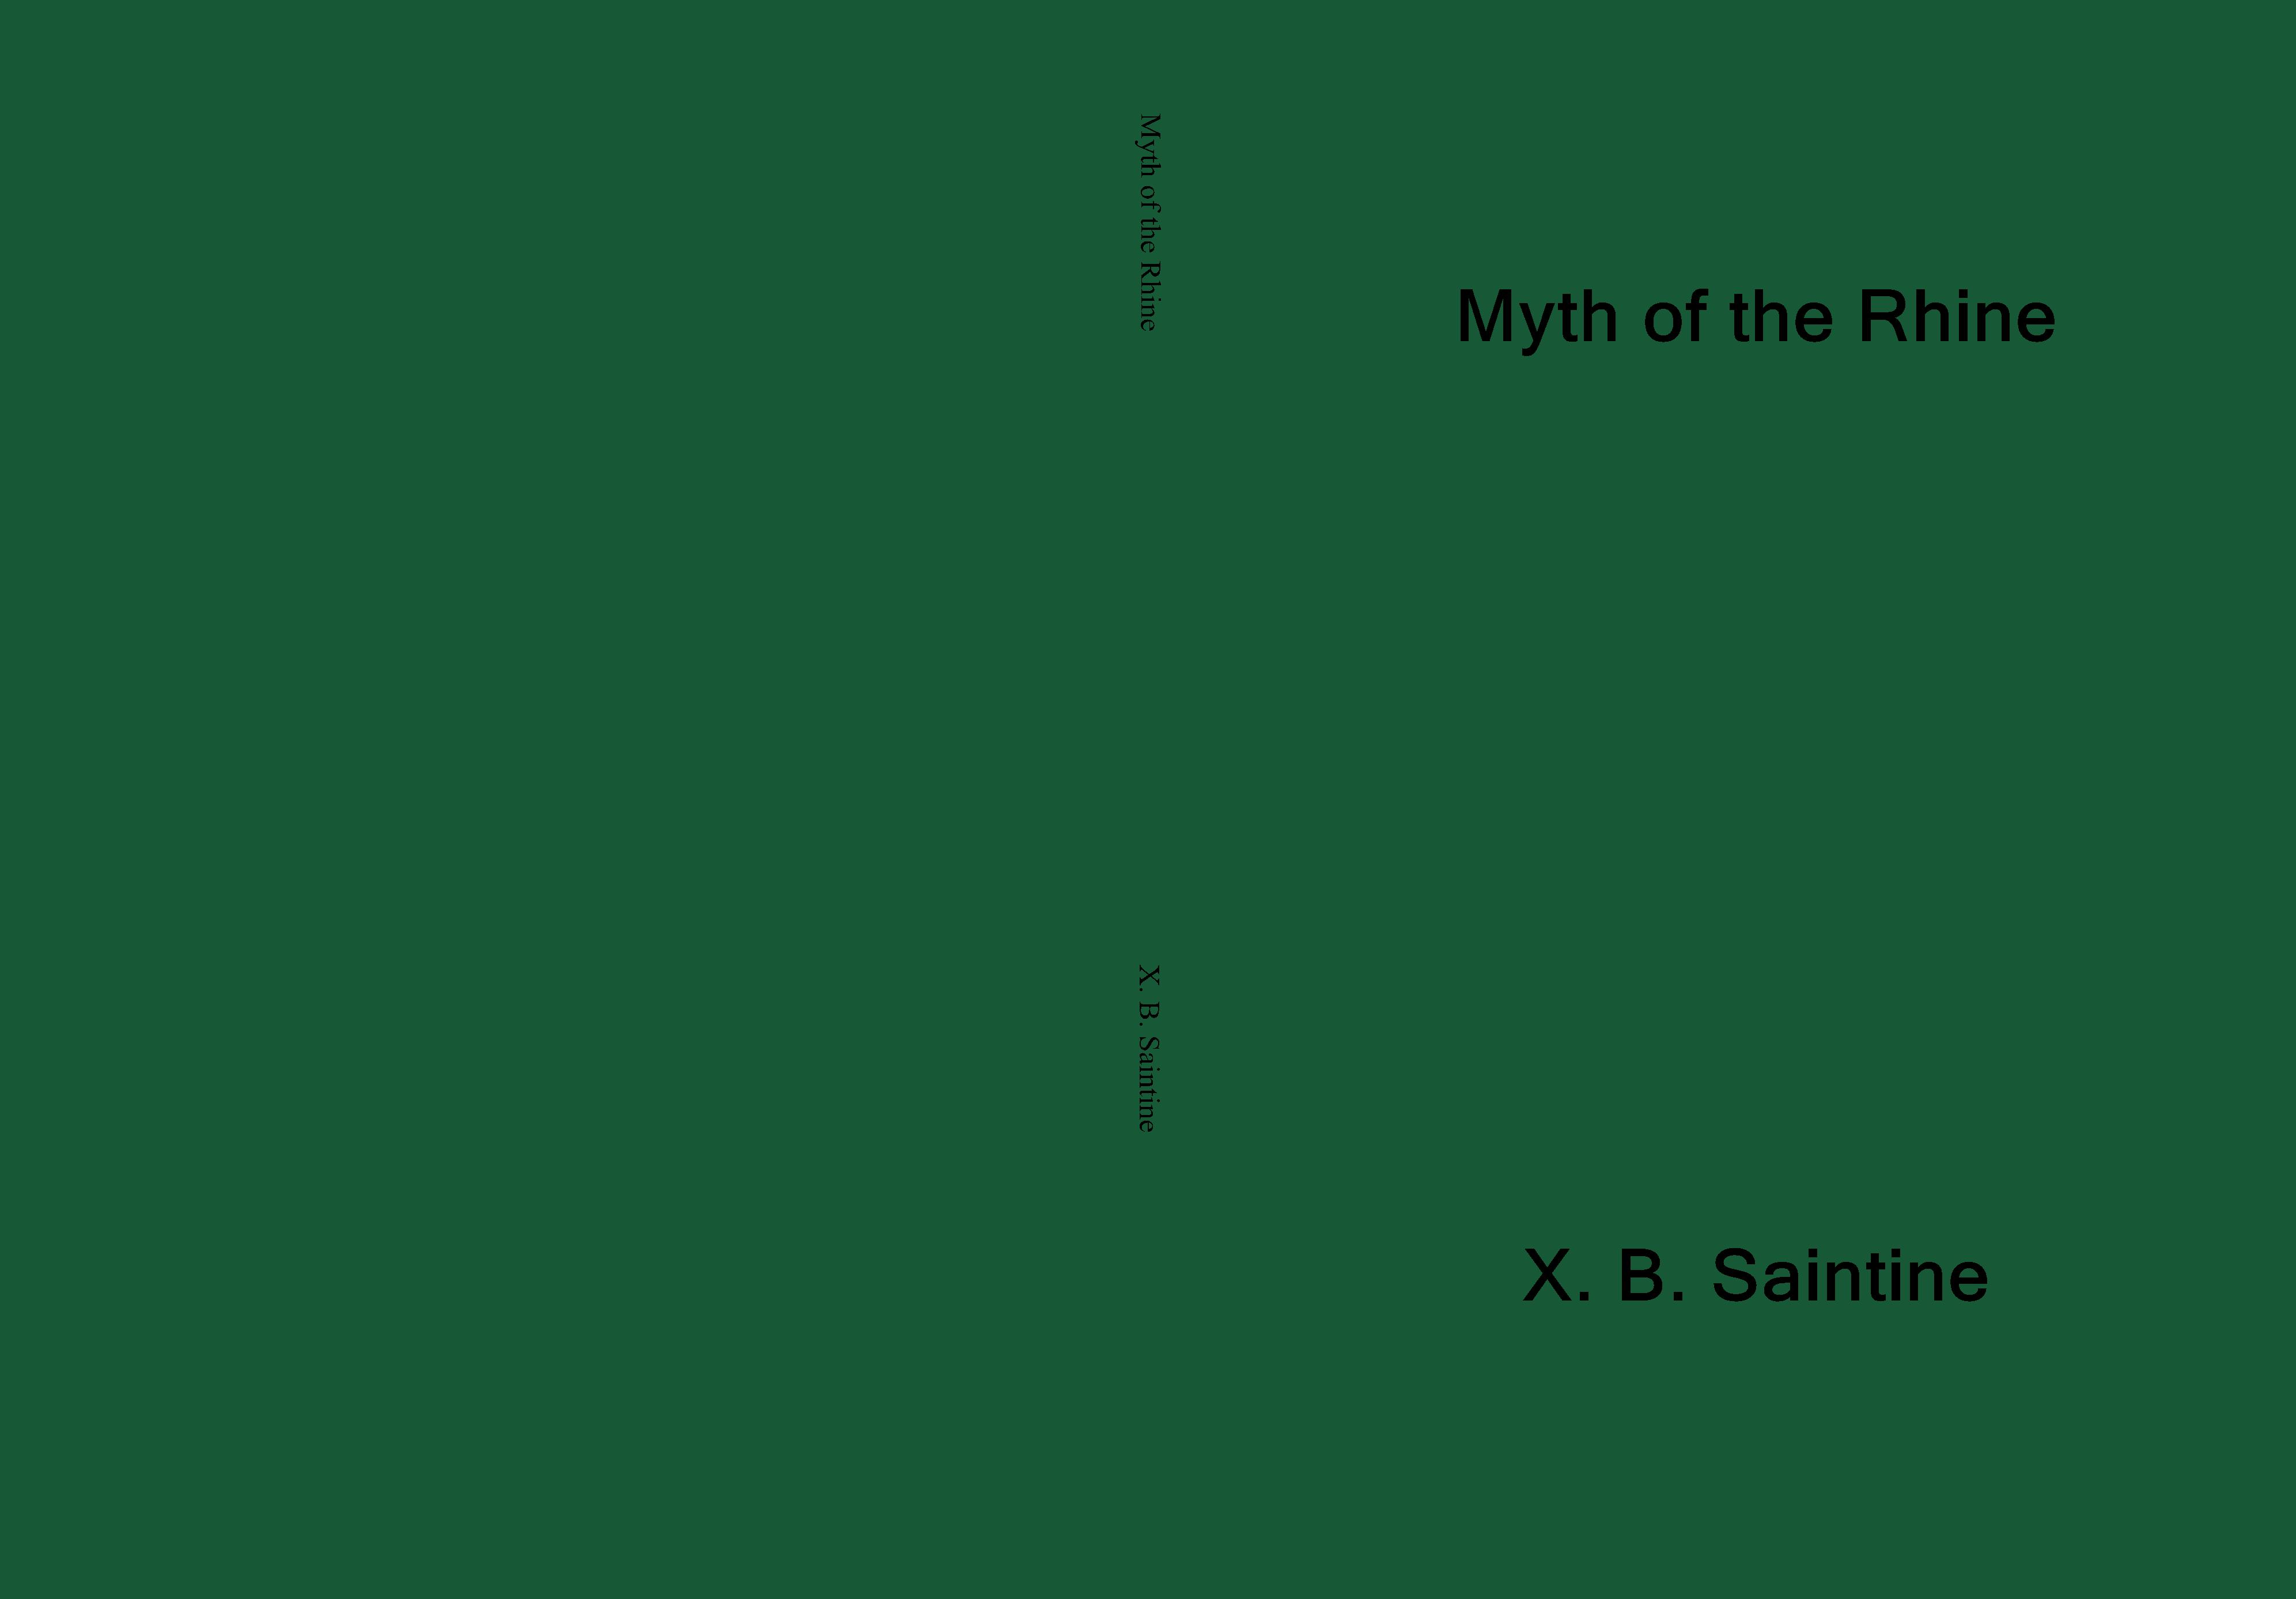 Myth of the Rhine cover image